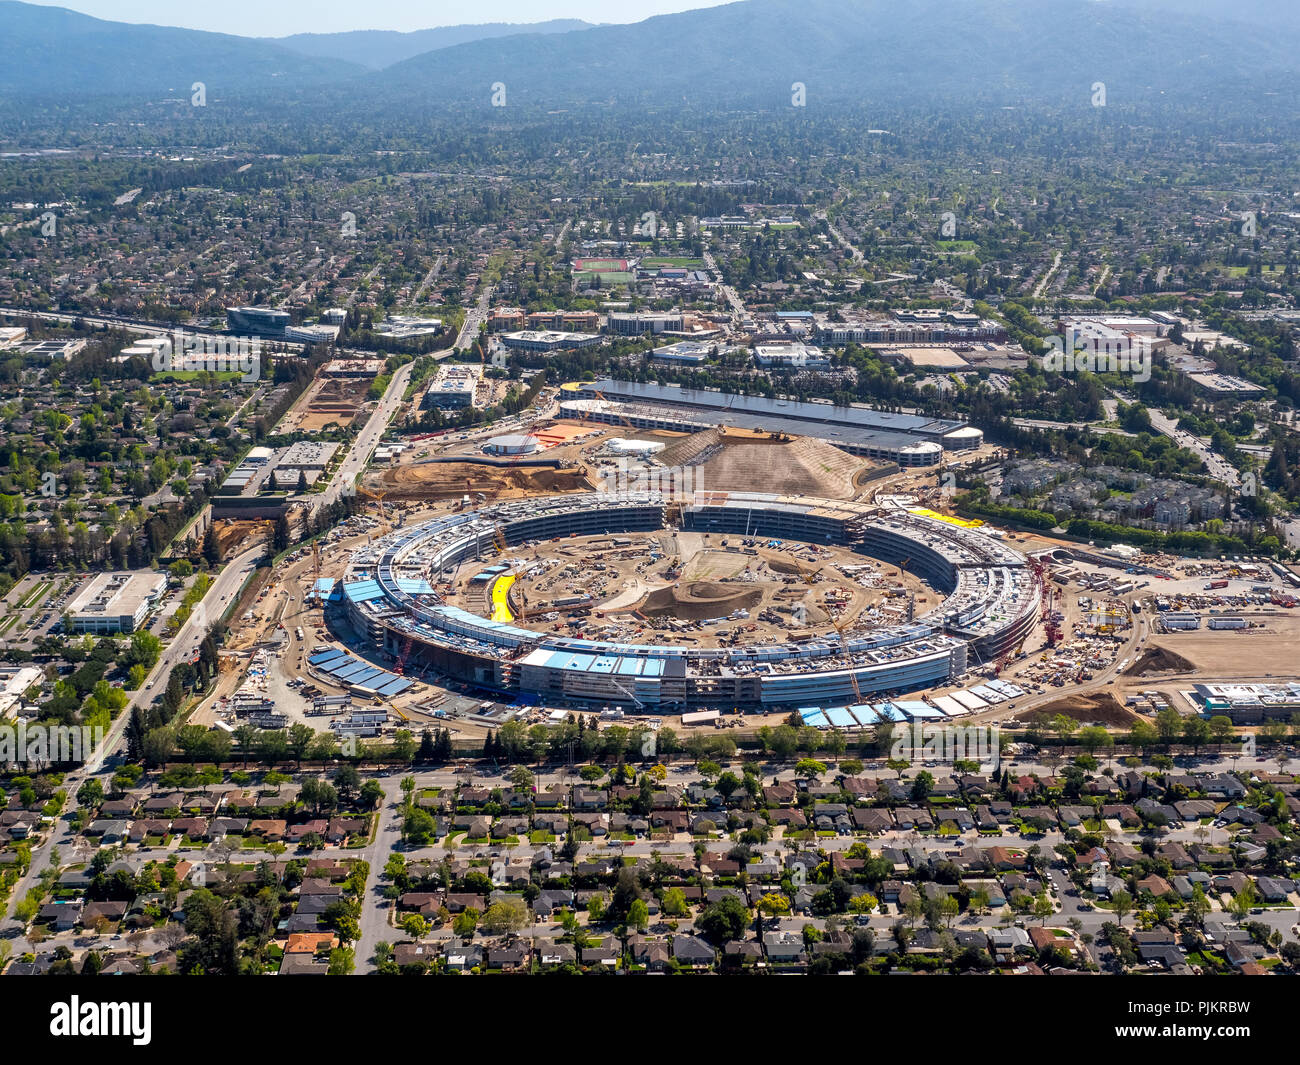 Apple Campus II, Round Building Site, Neo-Futurism, Neofuturism, Apple Inc, Lord Norman Foster Architect, Silicon Valley, Valley, California, United States of America, Cupertino, California, USA - Stock Image